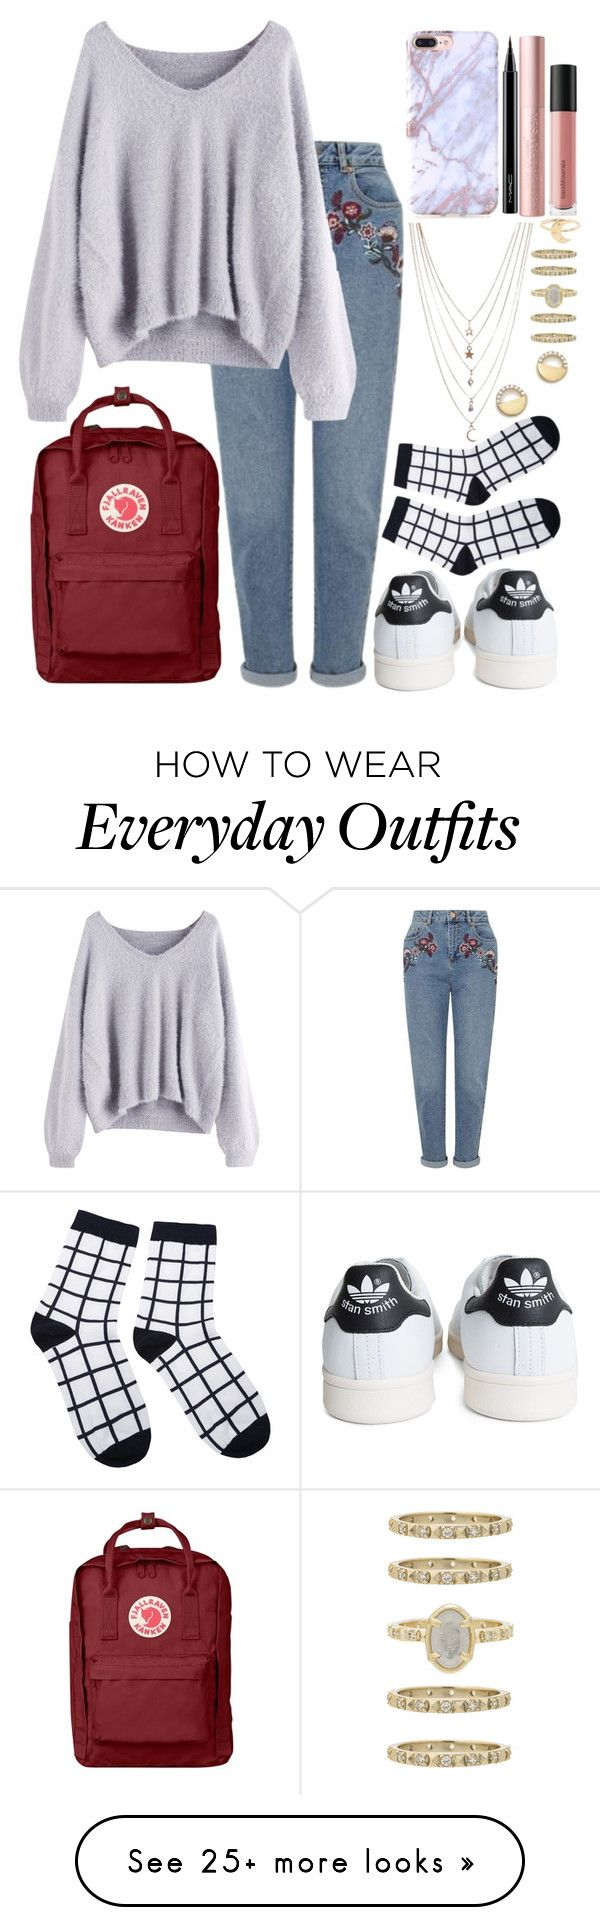 """""""Everyday outfit"""" by kleevort on Polyvore featuring Miss Selfridge, Fjällräven, MAC Cosmetics, Bare Escentuals, adidas, Ettika, Bloomingdale's and Kendra Scott"""